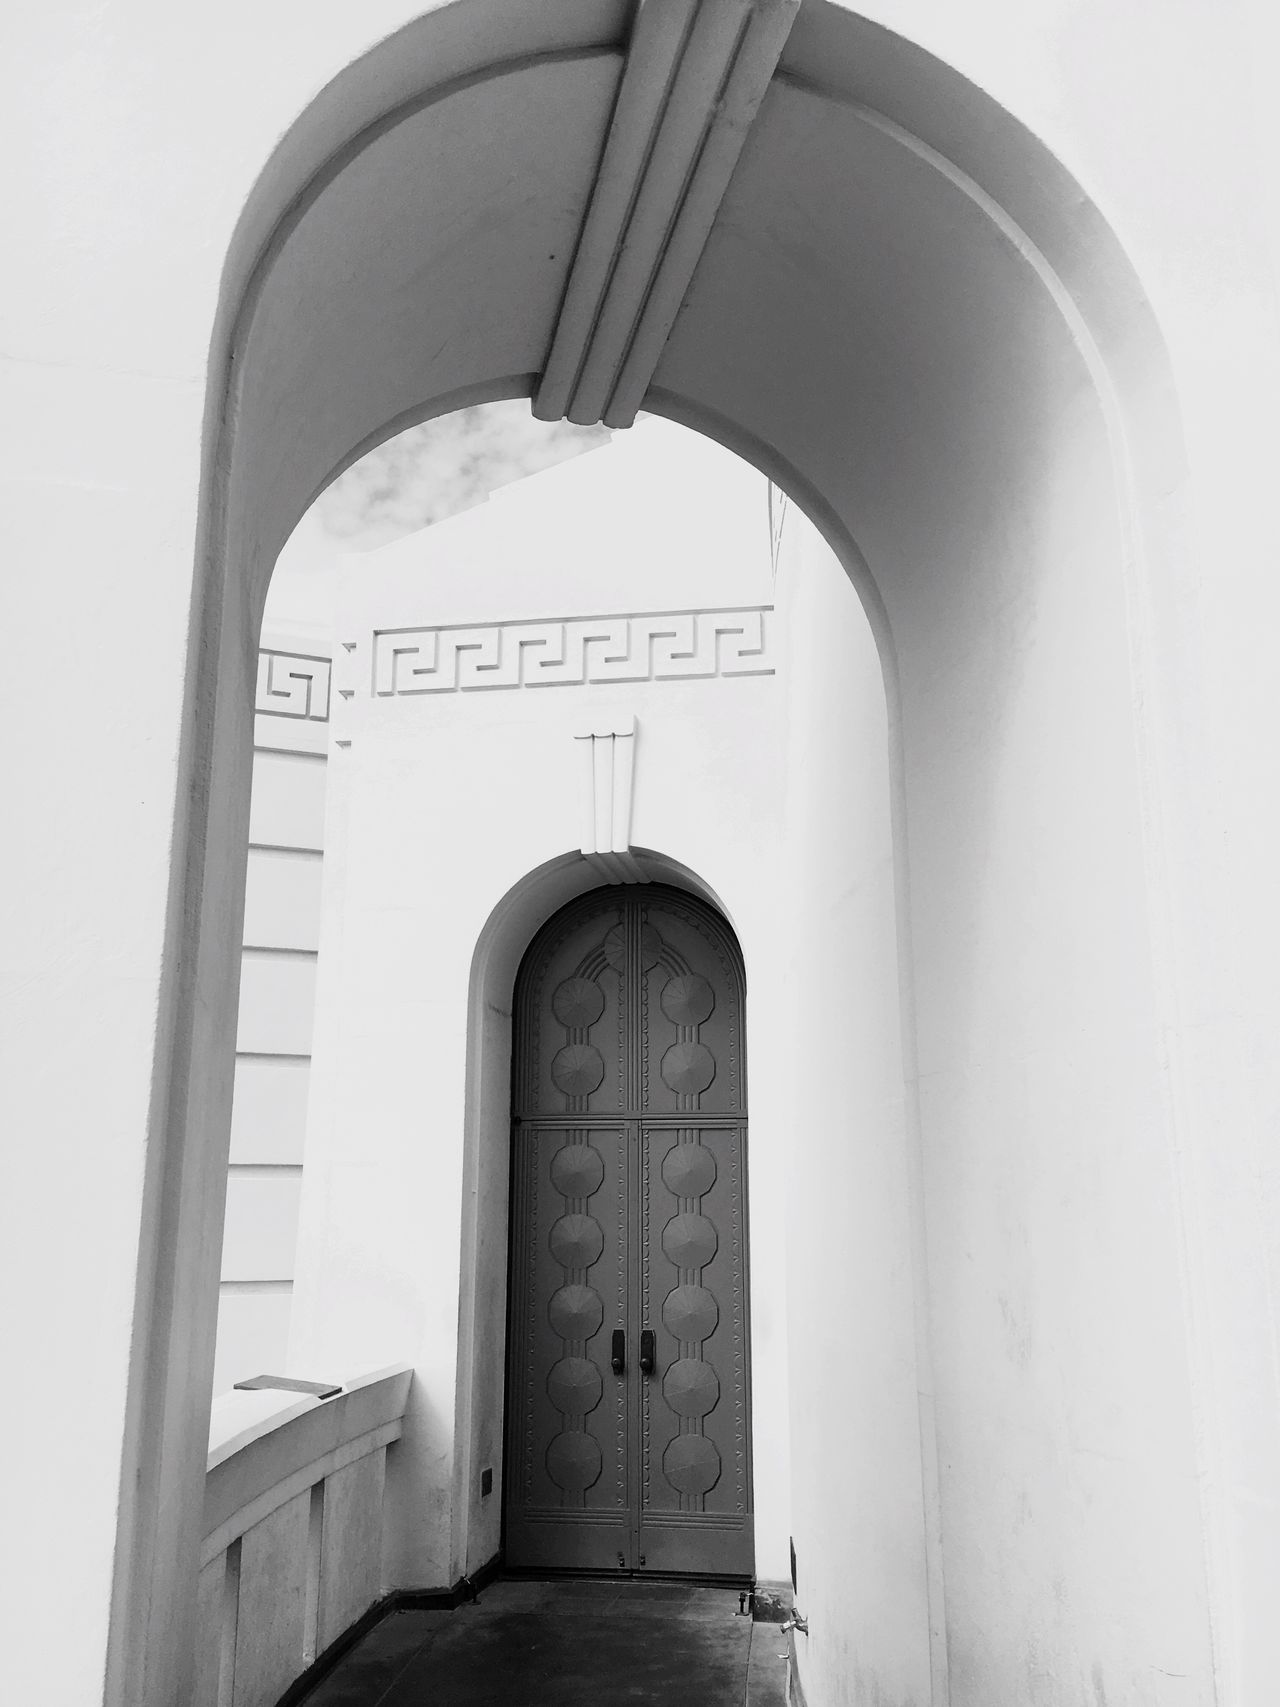 Arch Architecture Built Structure Building Exterior No People Door Whitewashed Entrance Low Angle View Religion Day Spirituality Place Of Worship Outdoors Iconic Landmark La La Land Griffiths Observatory